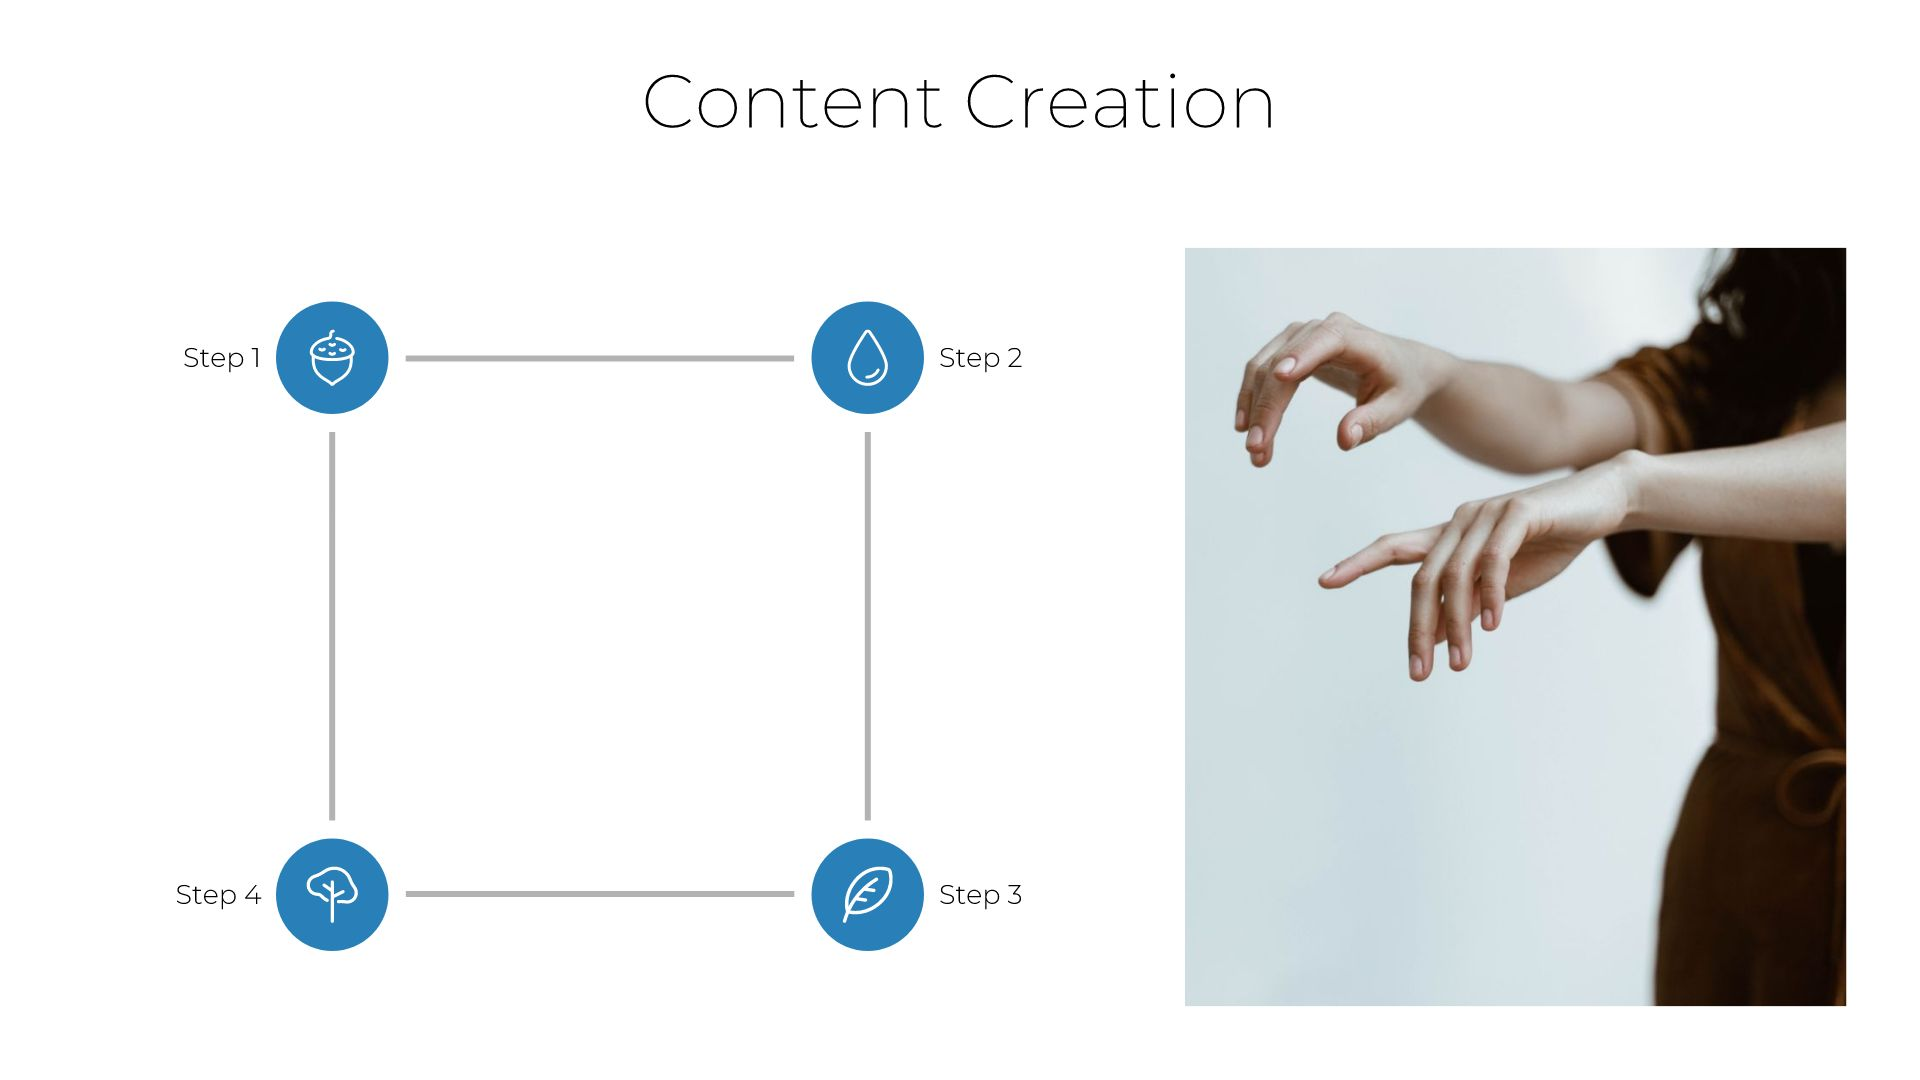 Content Creation Cycle